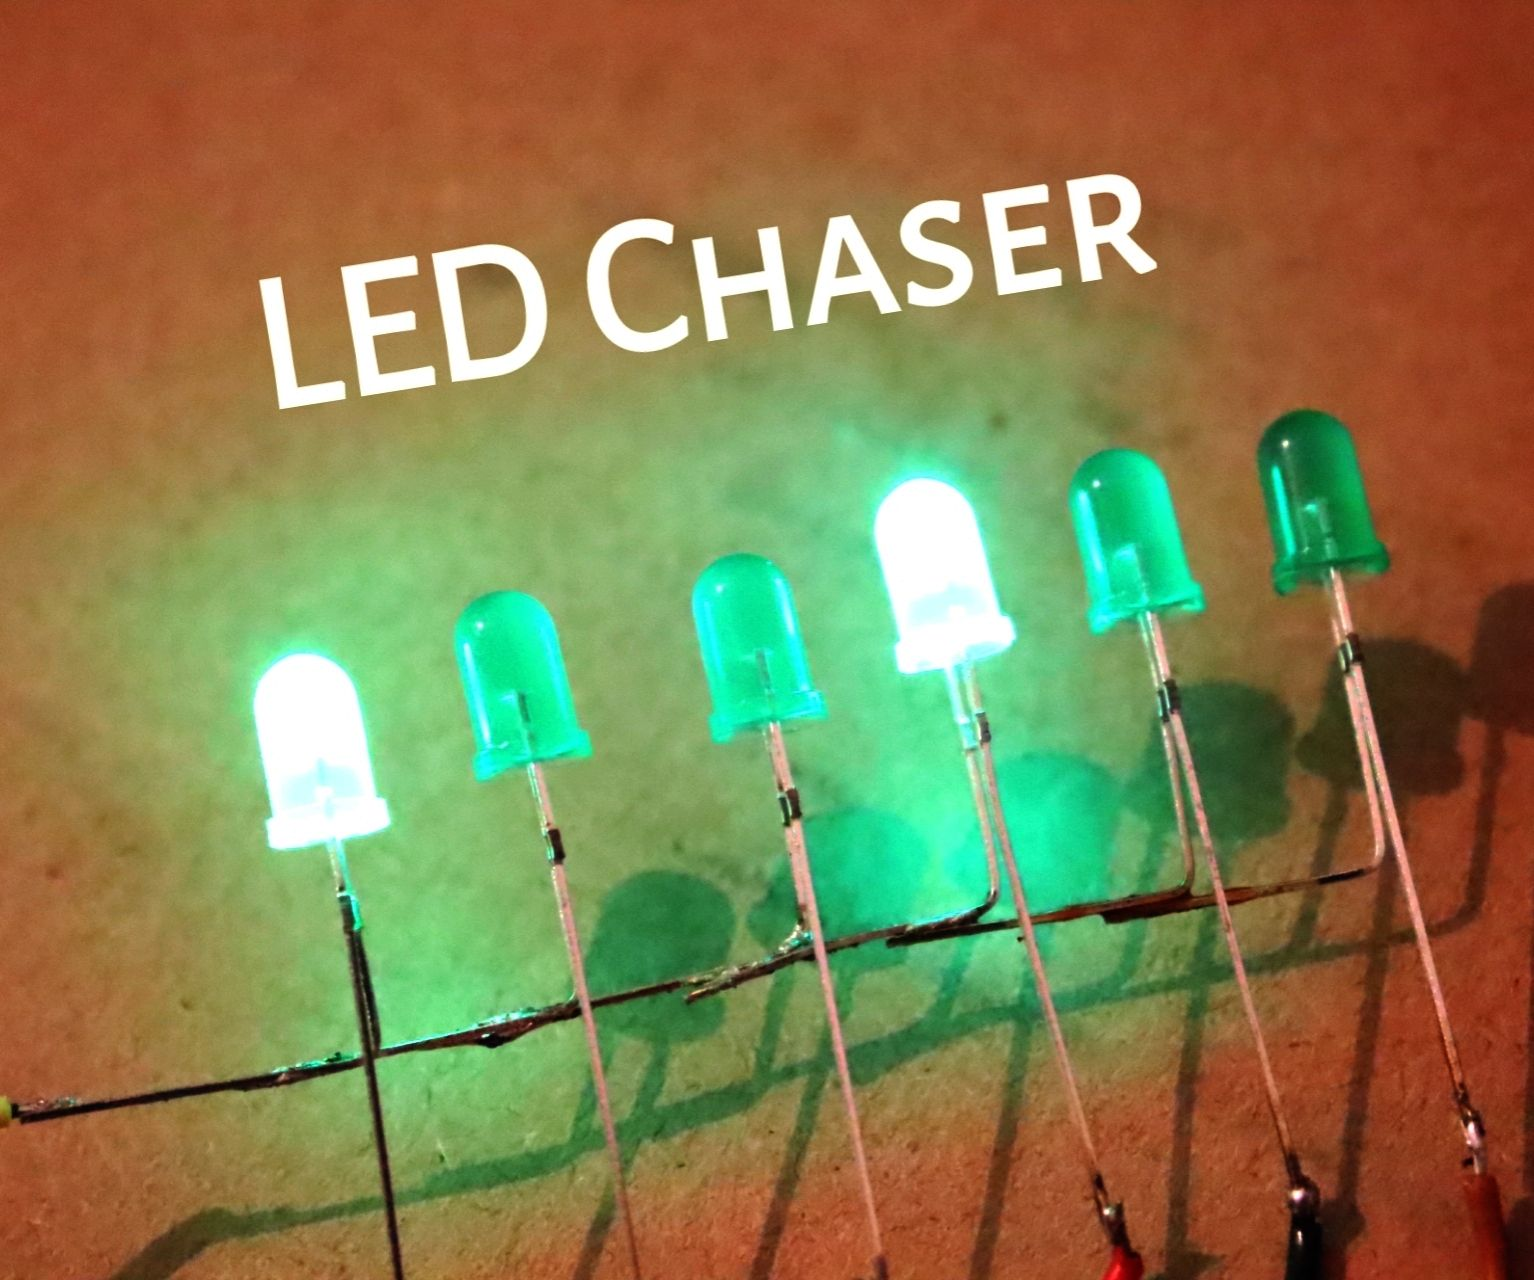 How to Make Best LED Chaser Without IC